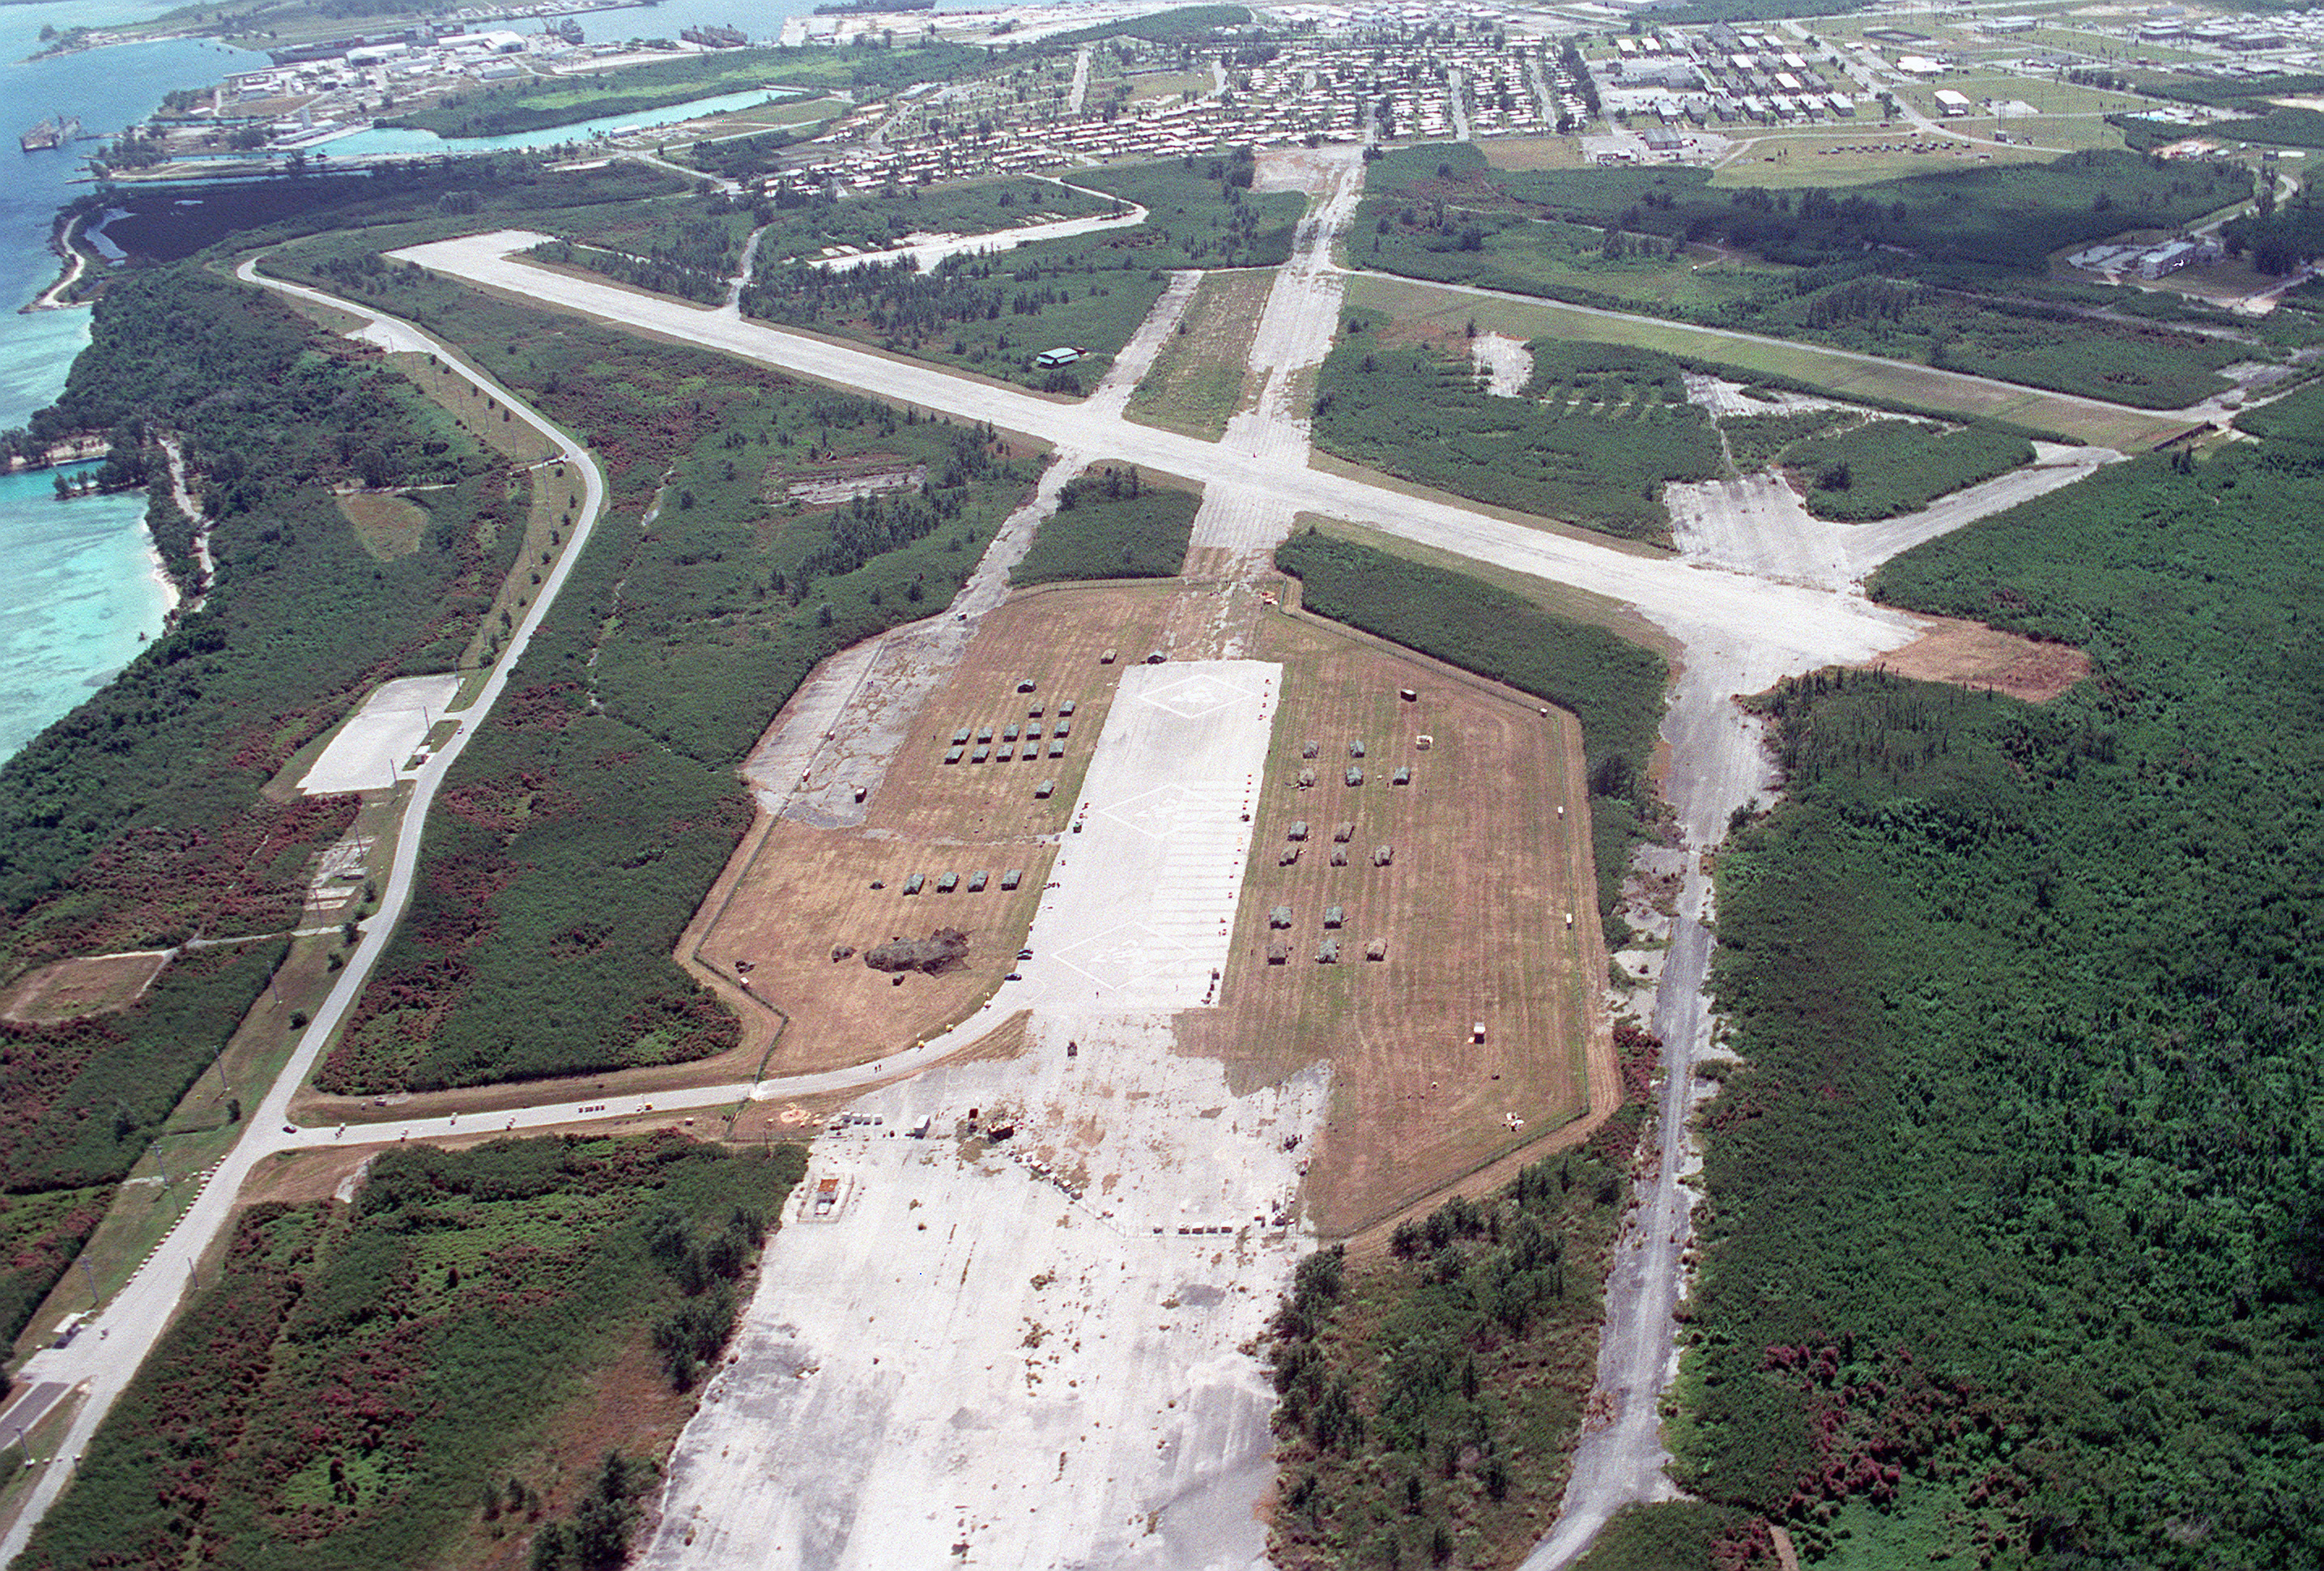 Orote Peninsula old airfield Guam aerial 1999